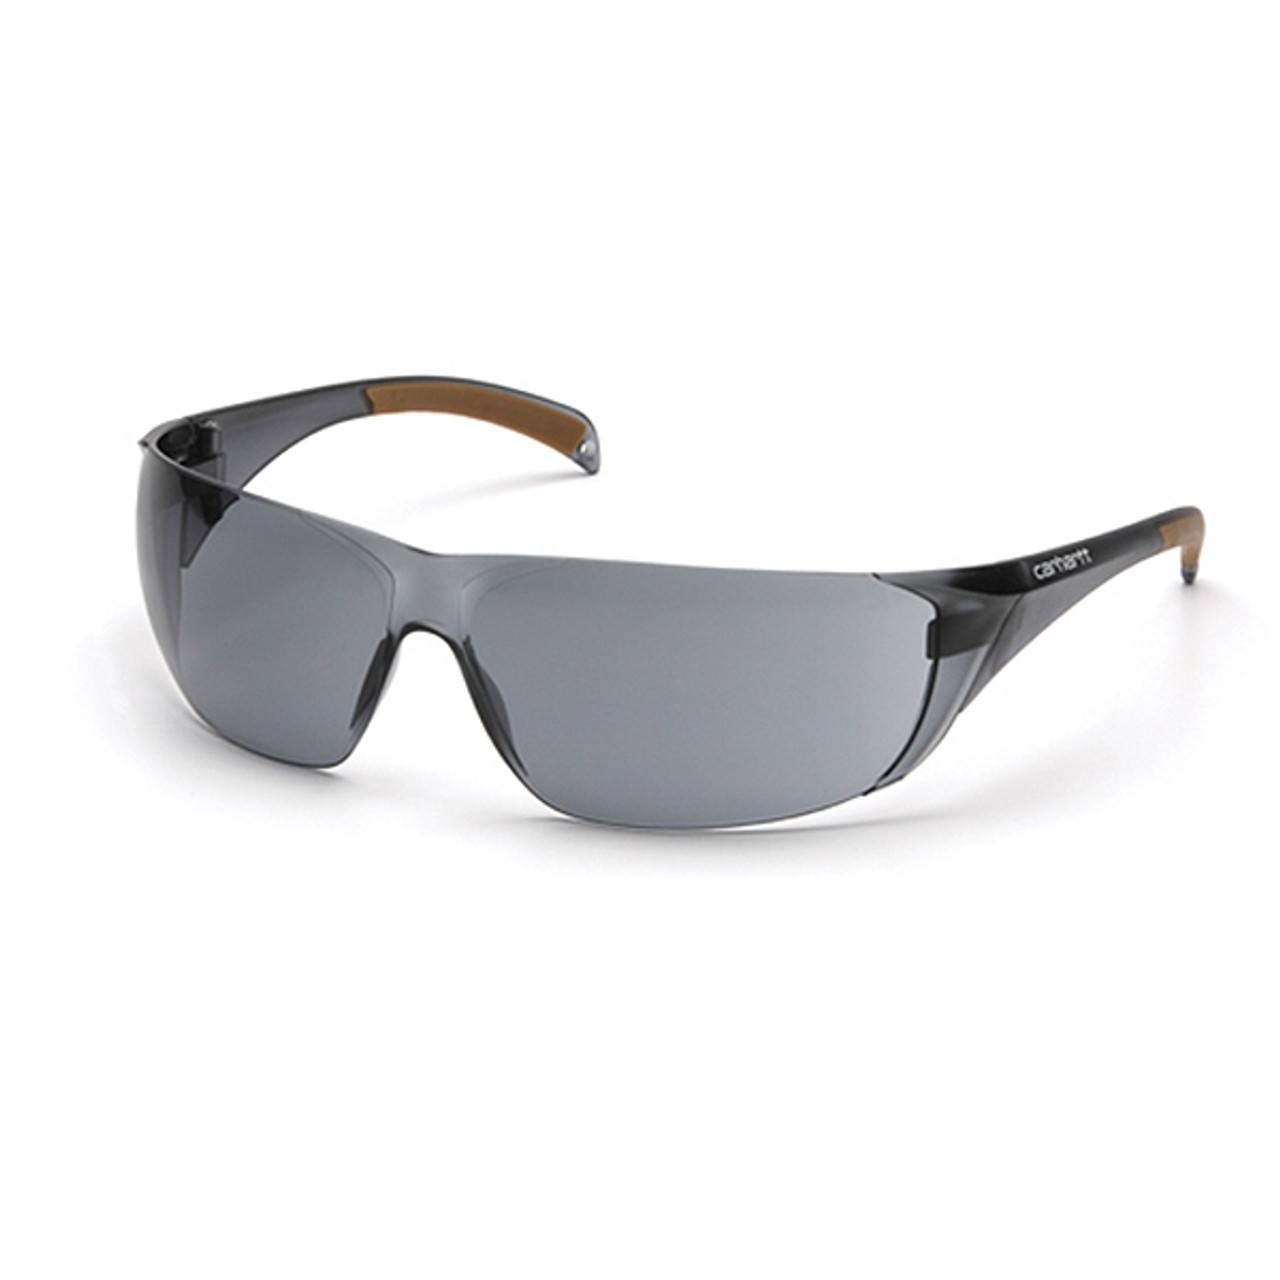 Carhartt Carbondale Dual Injected Full Frame Safety Glasses